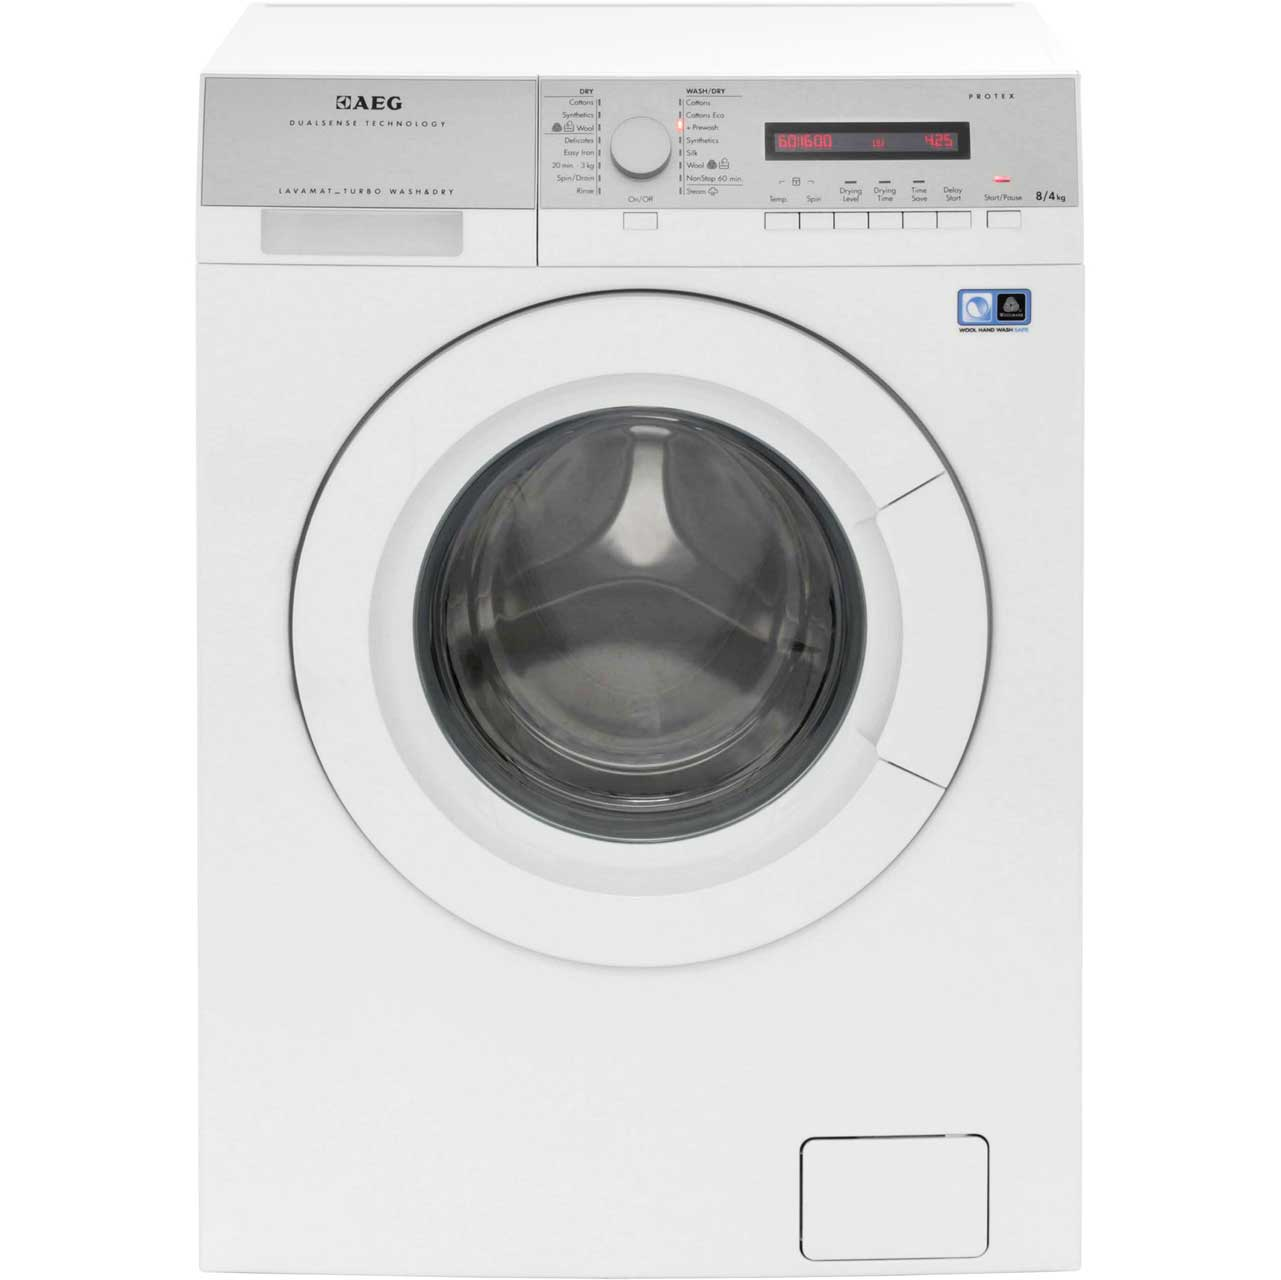 buy cheap aeg lavamat washer dryer compare washer dryers prices for best uk deals. Black Bedroom Furniture Sets. Home Design Ideas